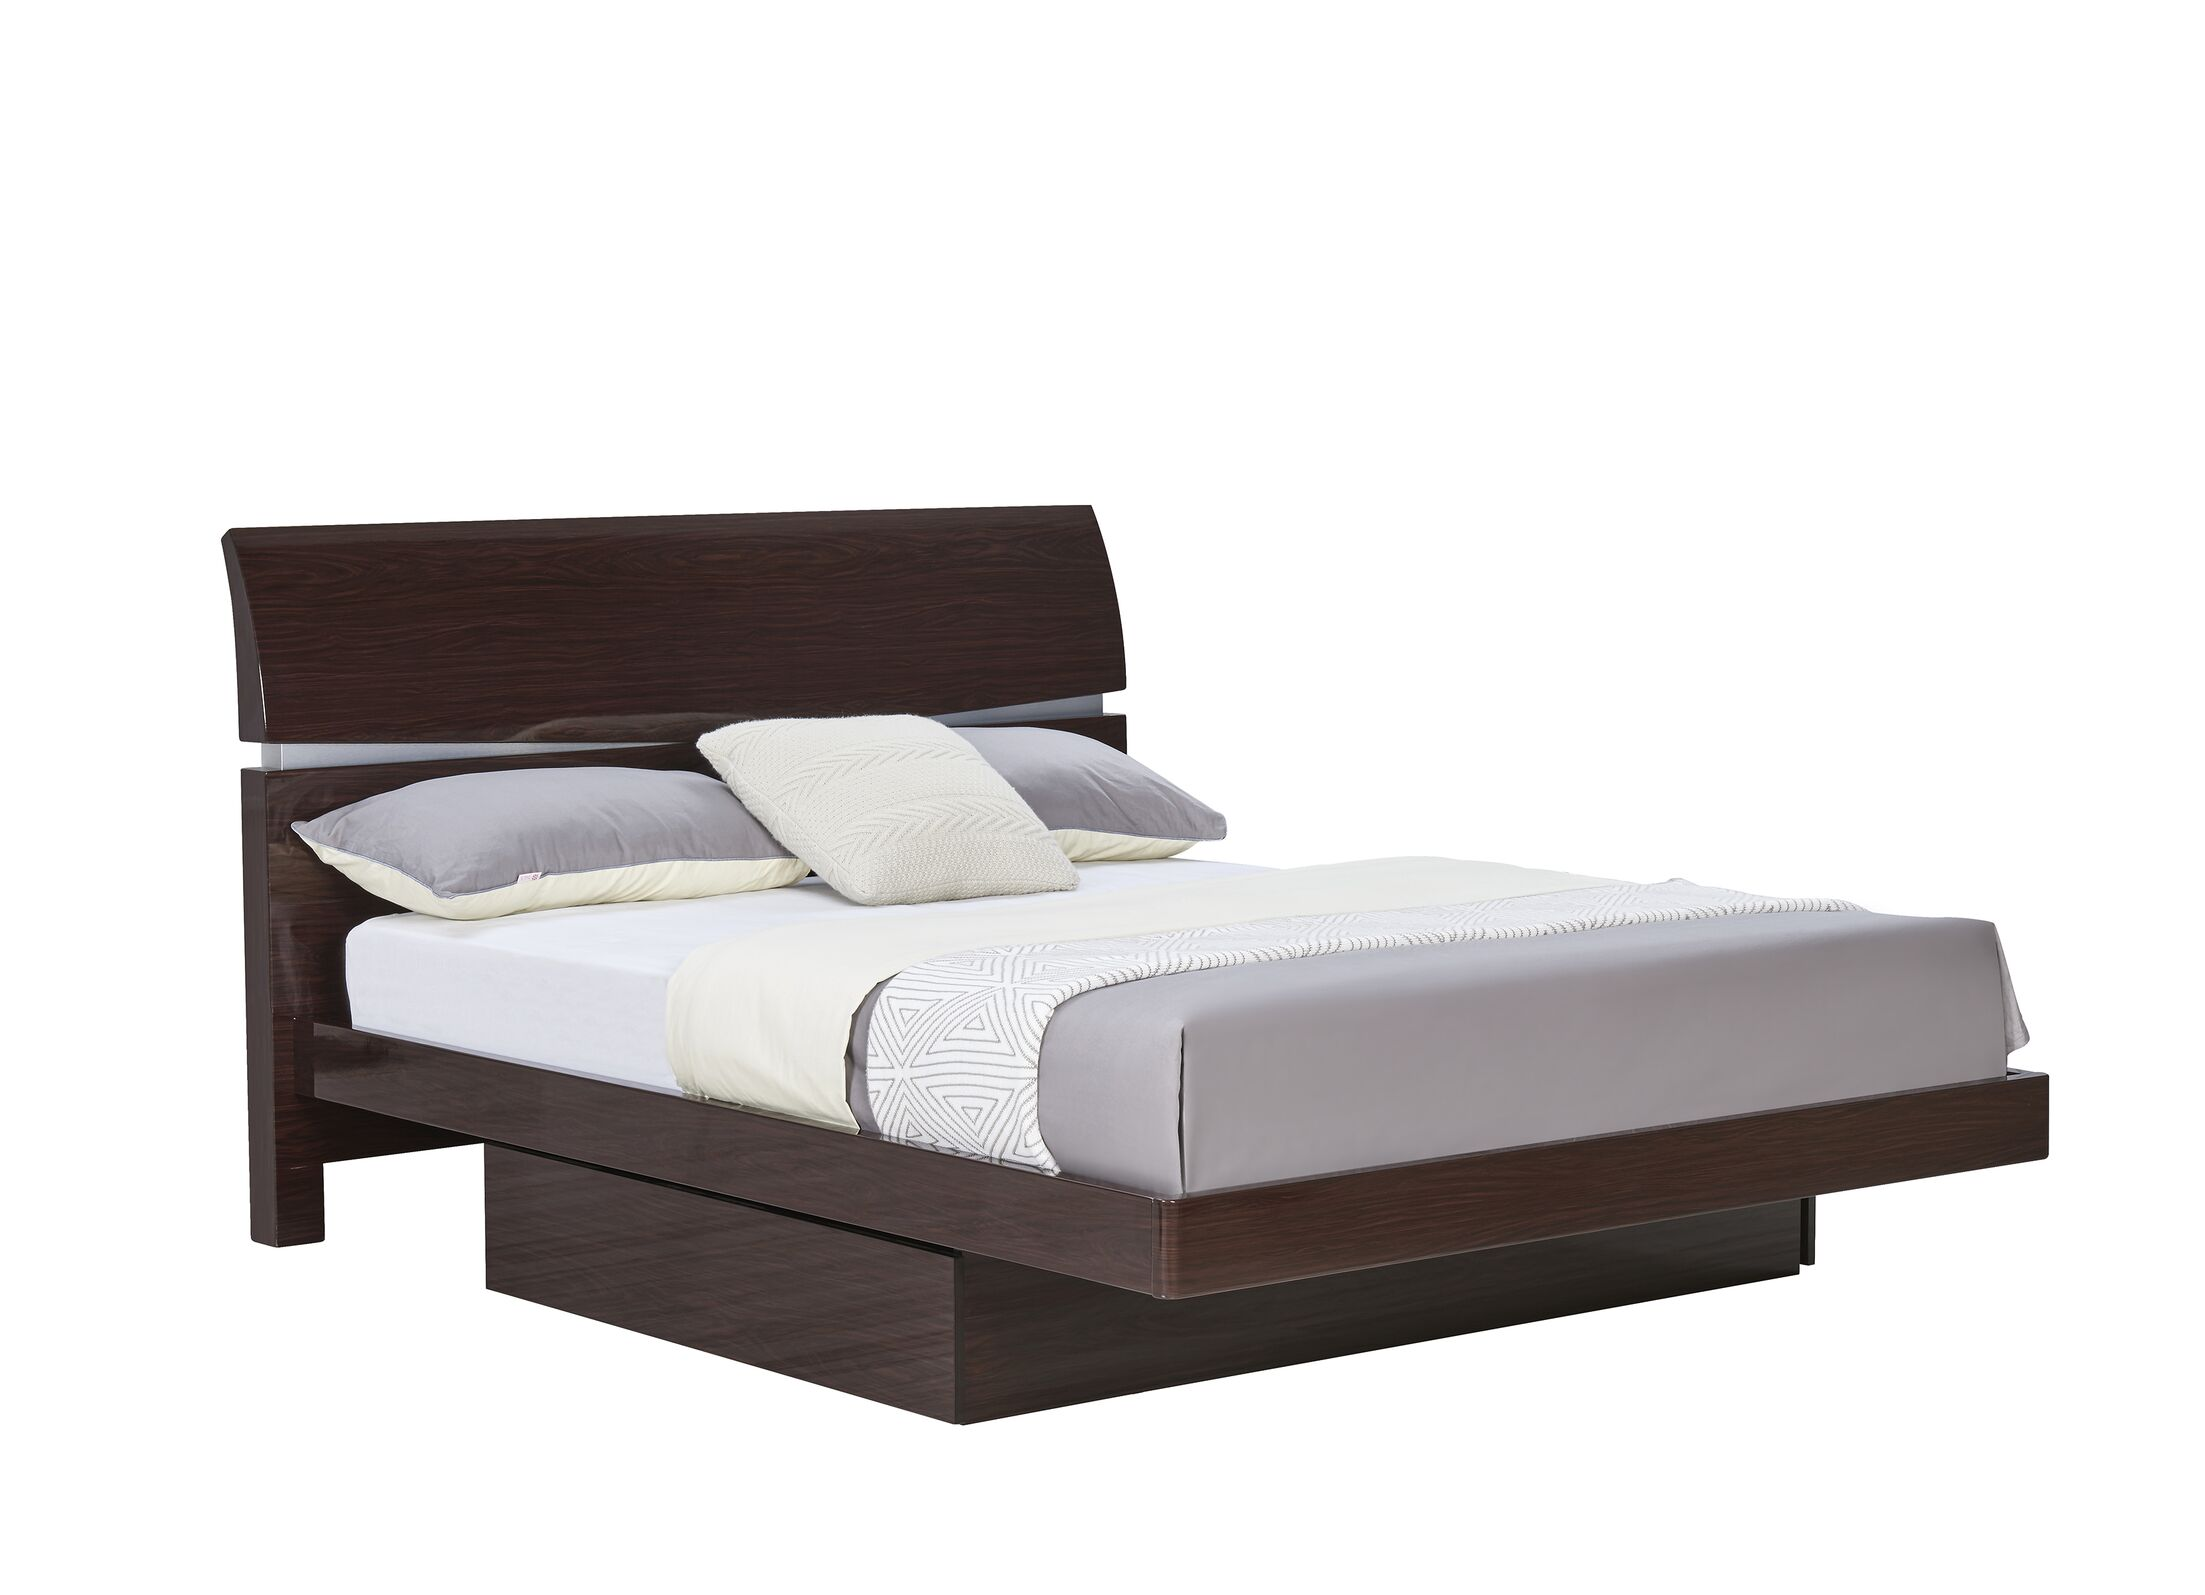 Sanmiguel Storage Panel Bed Color: Cappuccino, Size: King